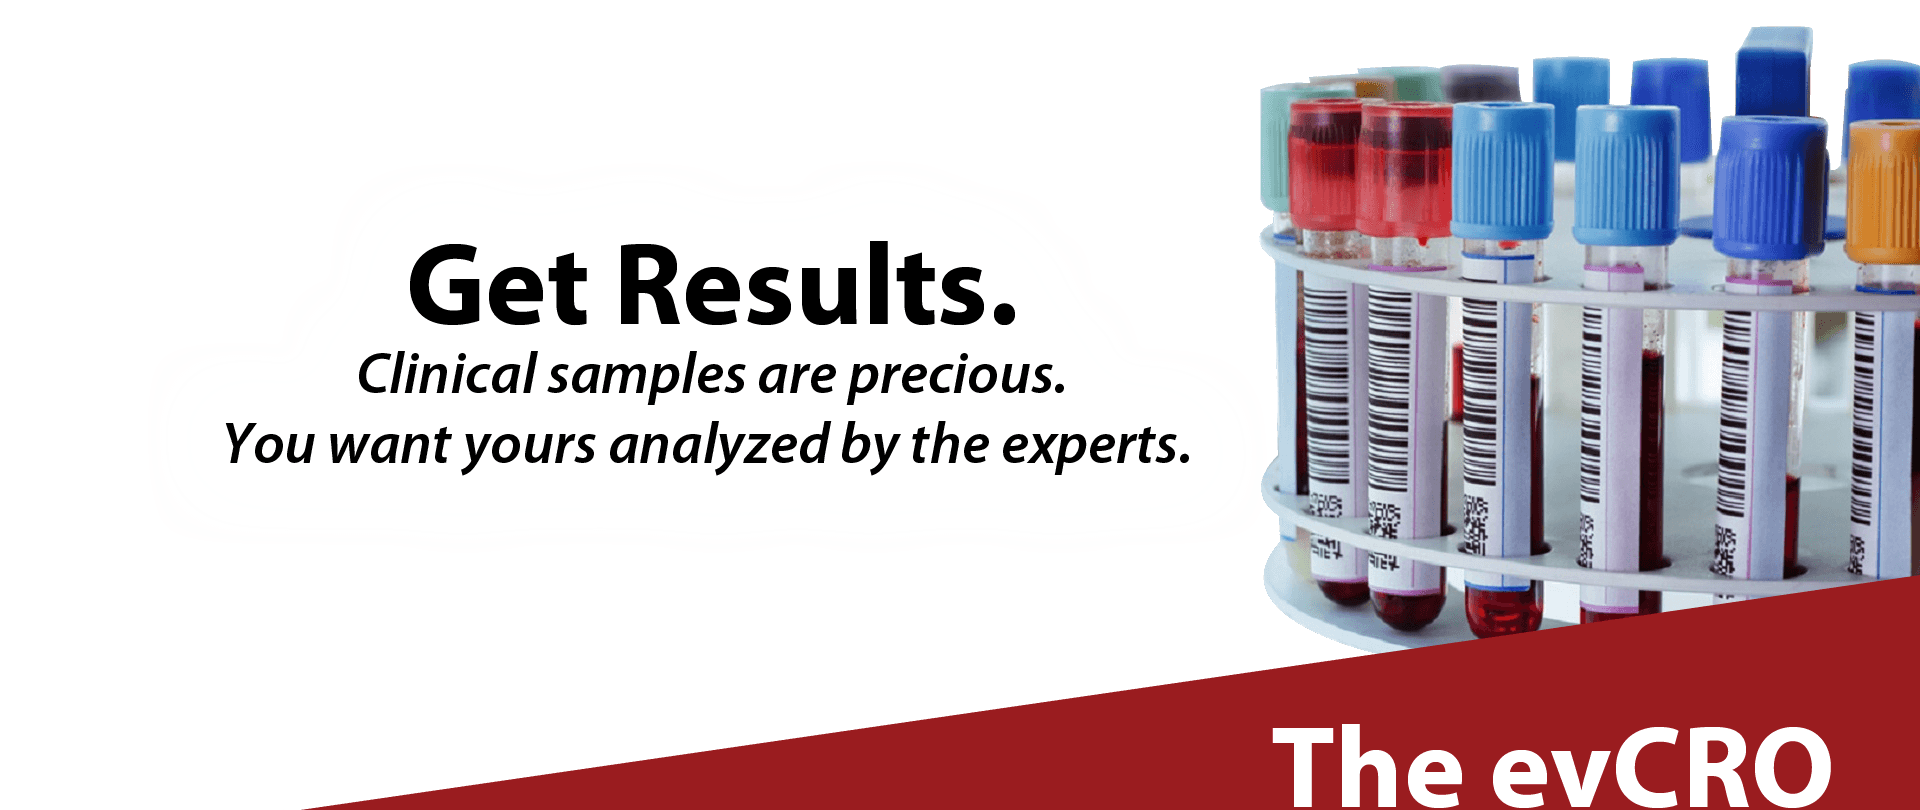 Clinical samples are precious. You want yours analyzed by the experts.